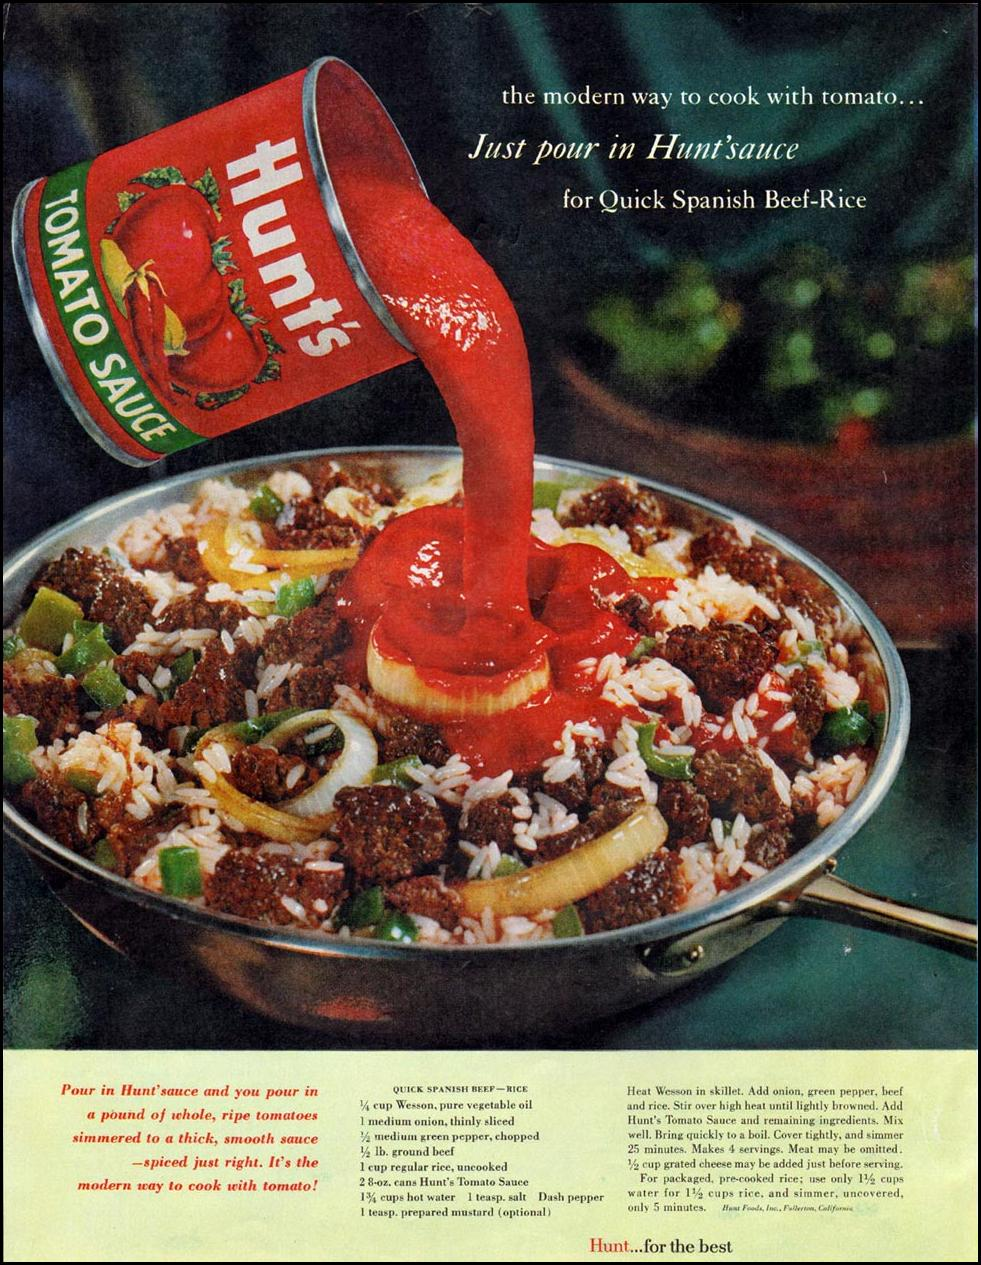 HUNT'S TOMATO SAUCE LADIES' HOME JOURNAL 06/01/1961 p. 38